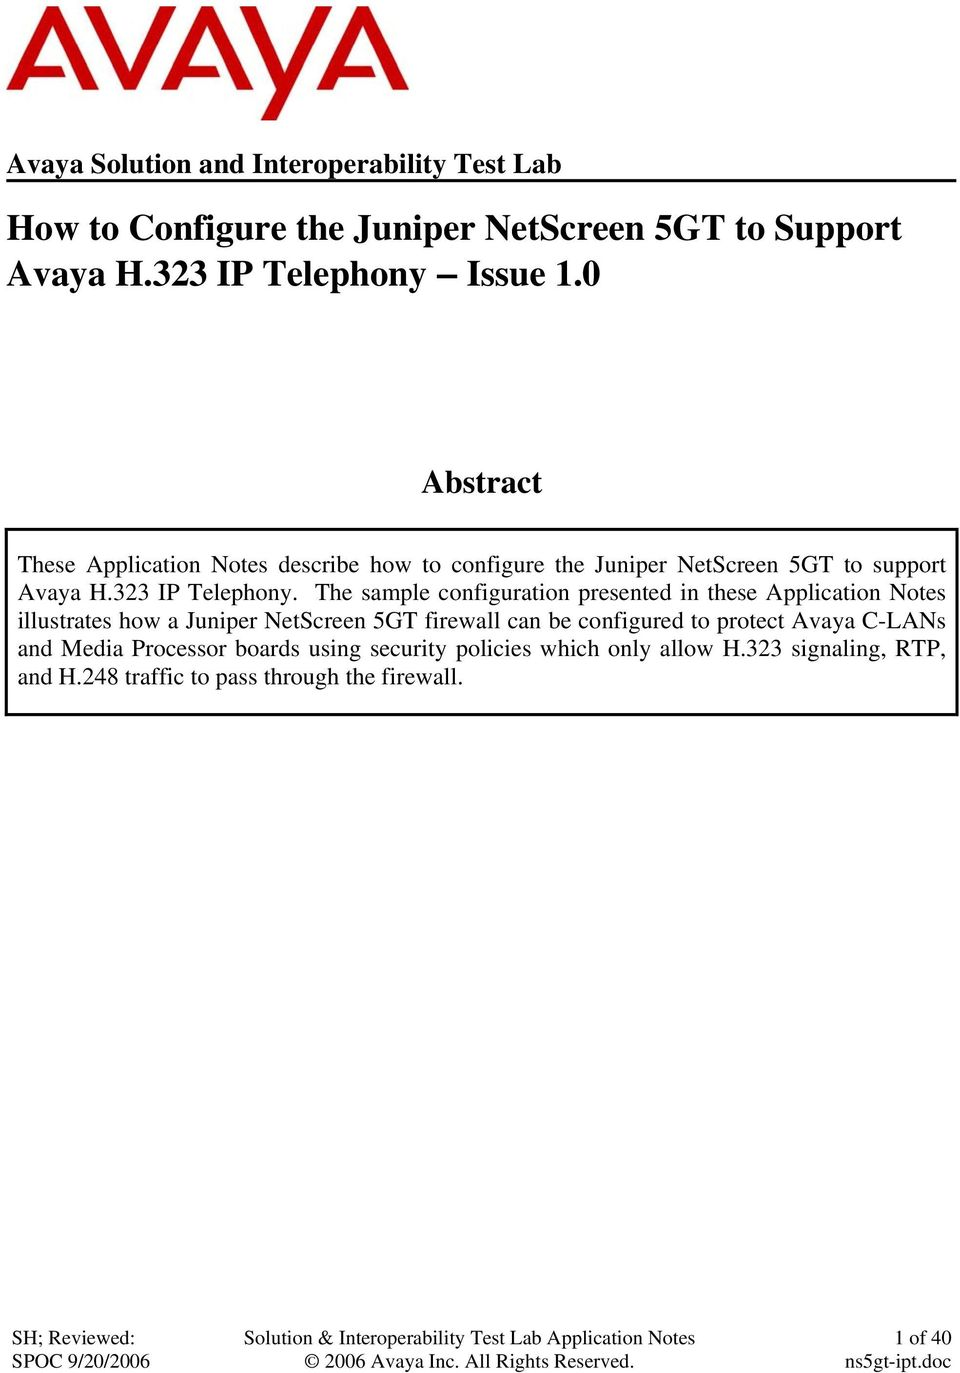 The sample configuration presented in these Application Notes illustrates how a Juniper NetScreen 5GT firewall can be configured to